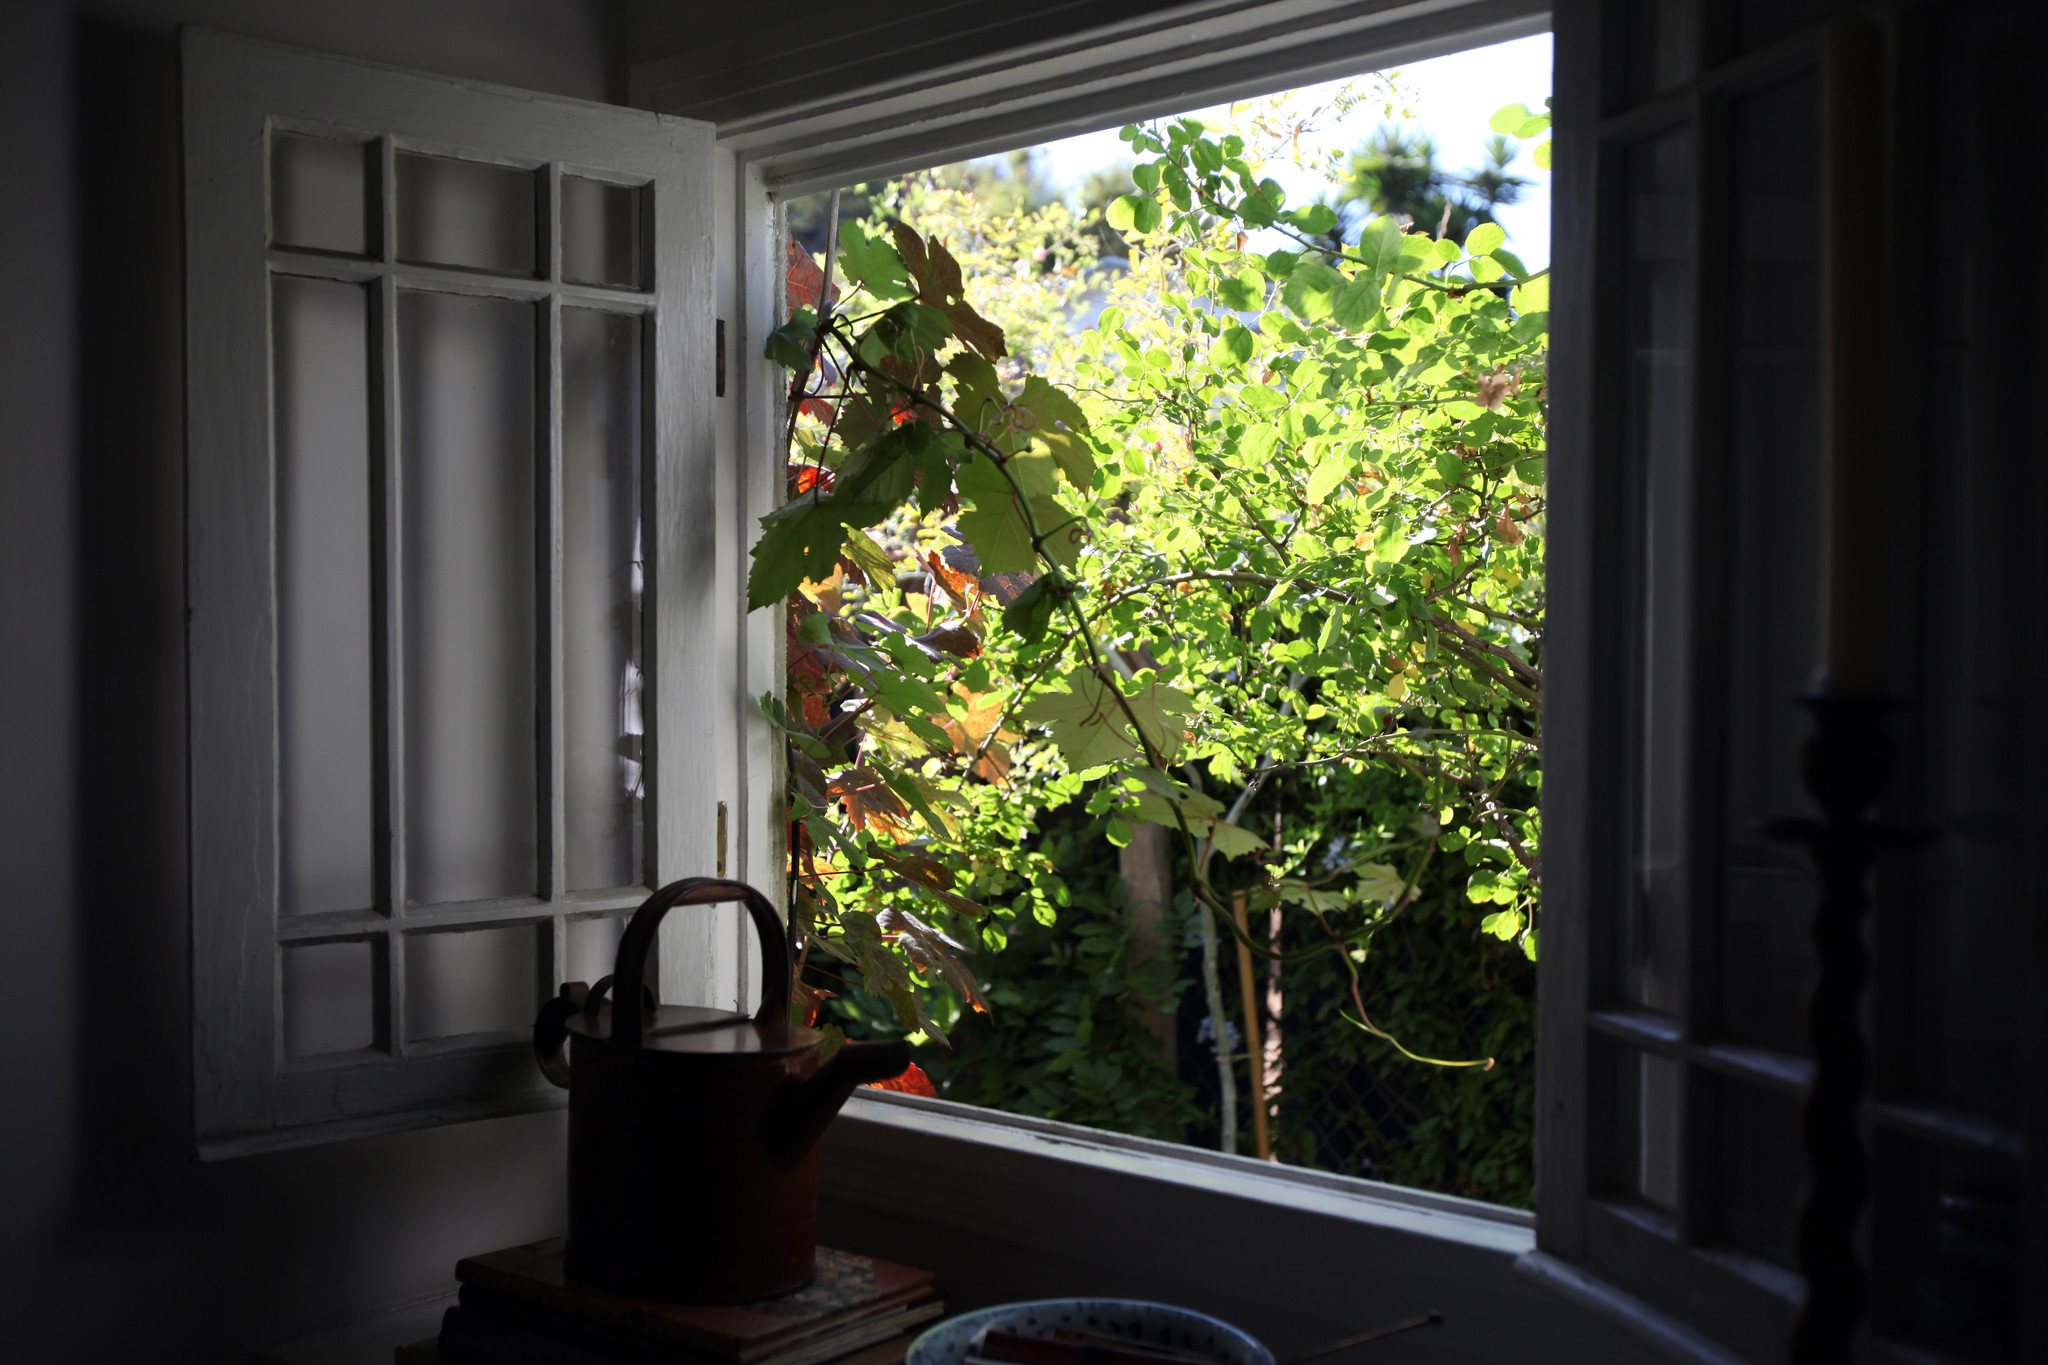 Gardening with window views in mind 4 tips from a design for Garden design windows 7